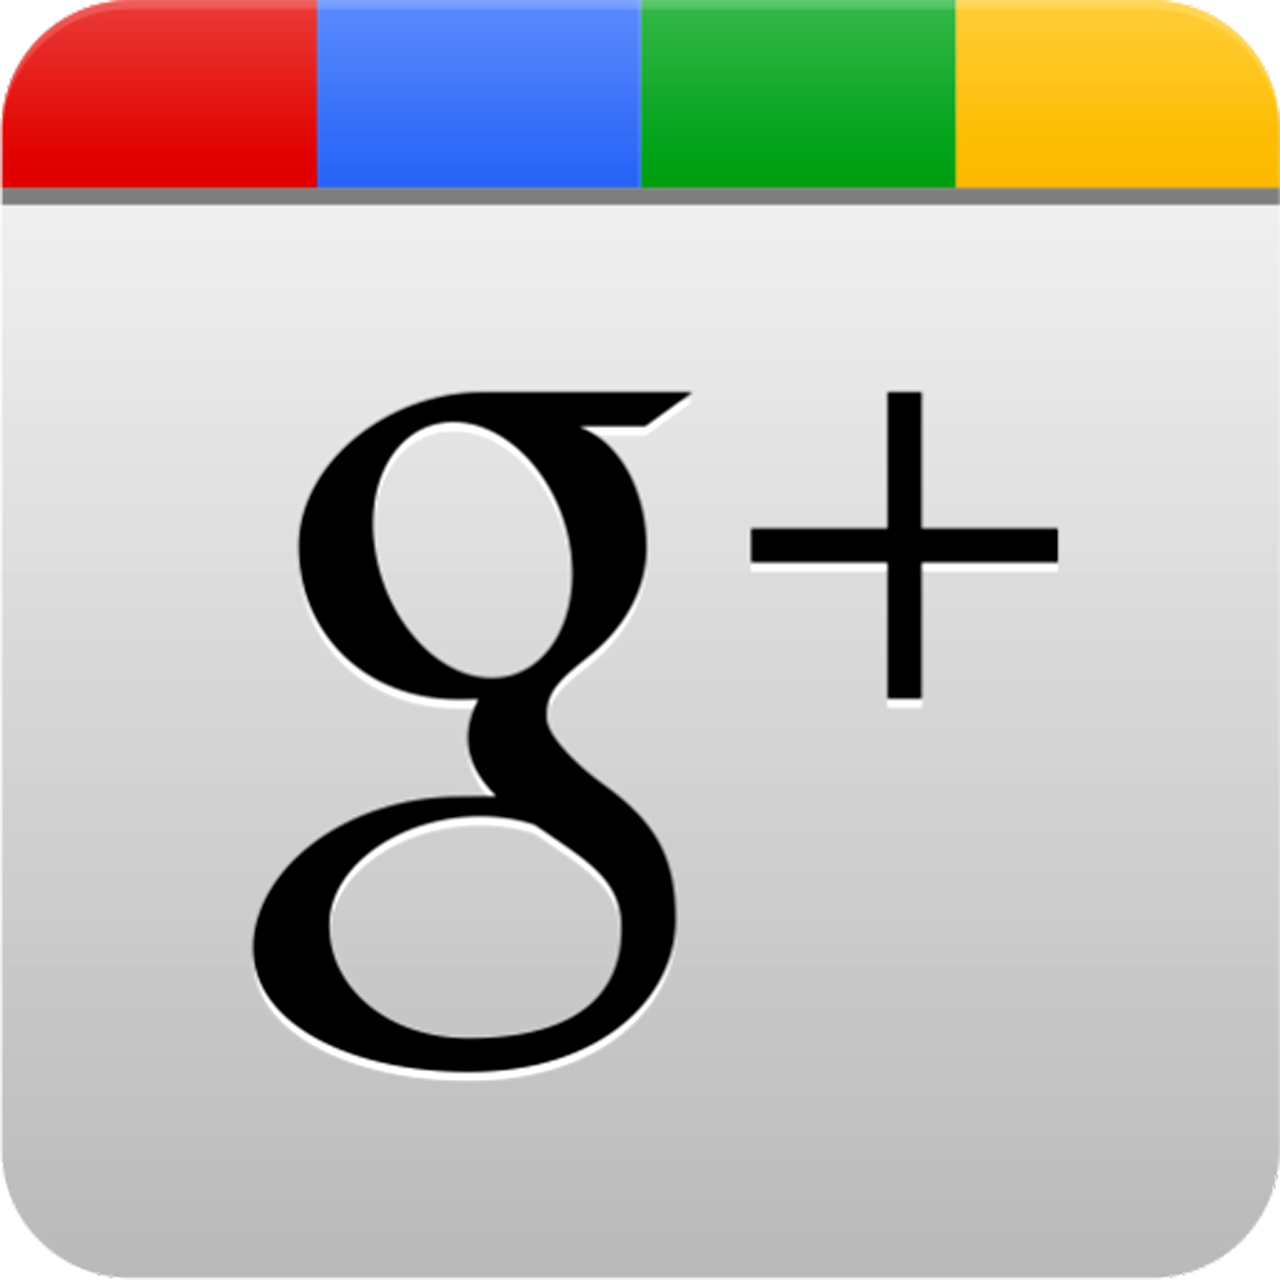 I Need 10.000 Google Plus Community Members: Want to Buy for $100 ...